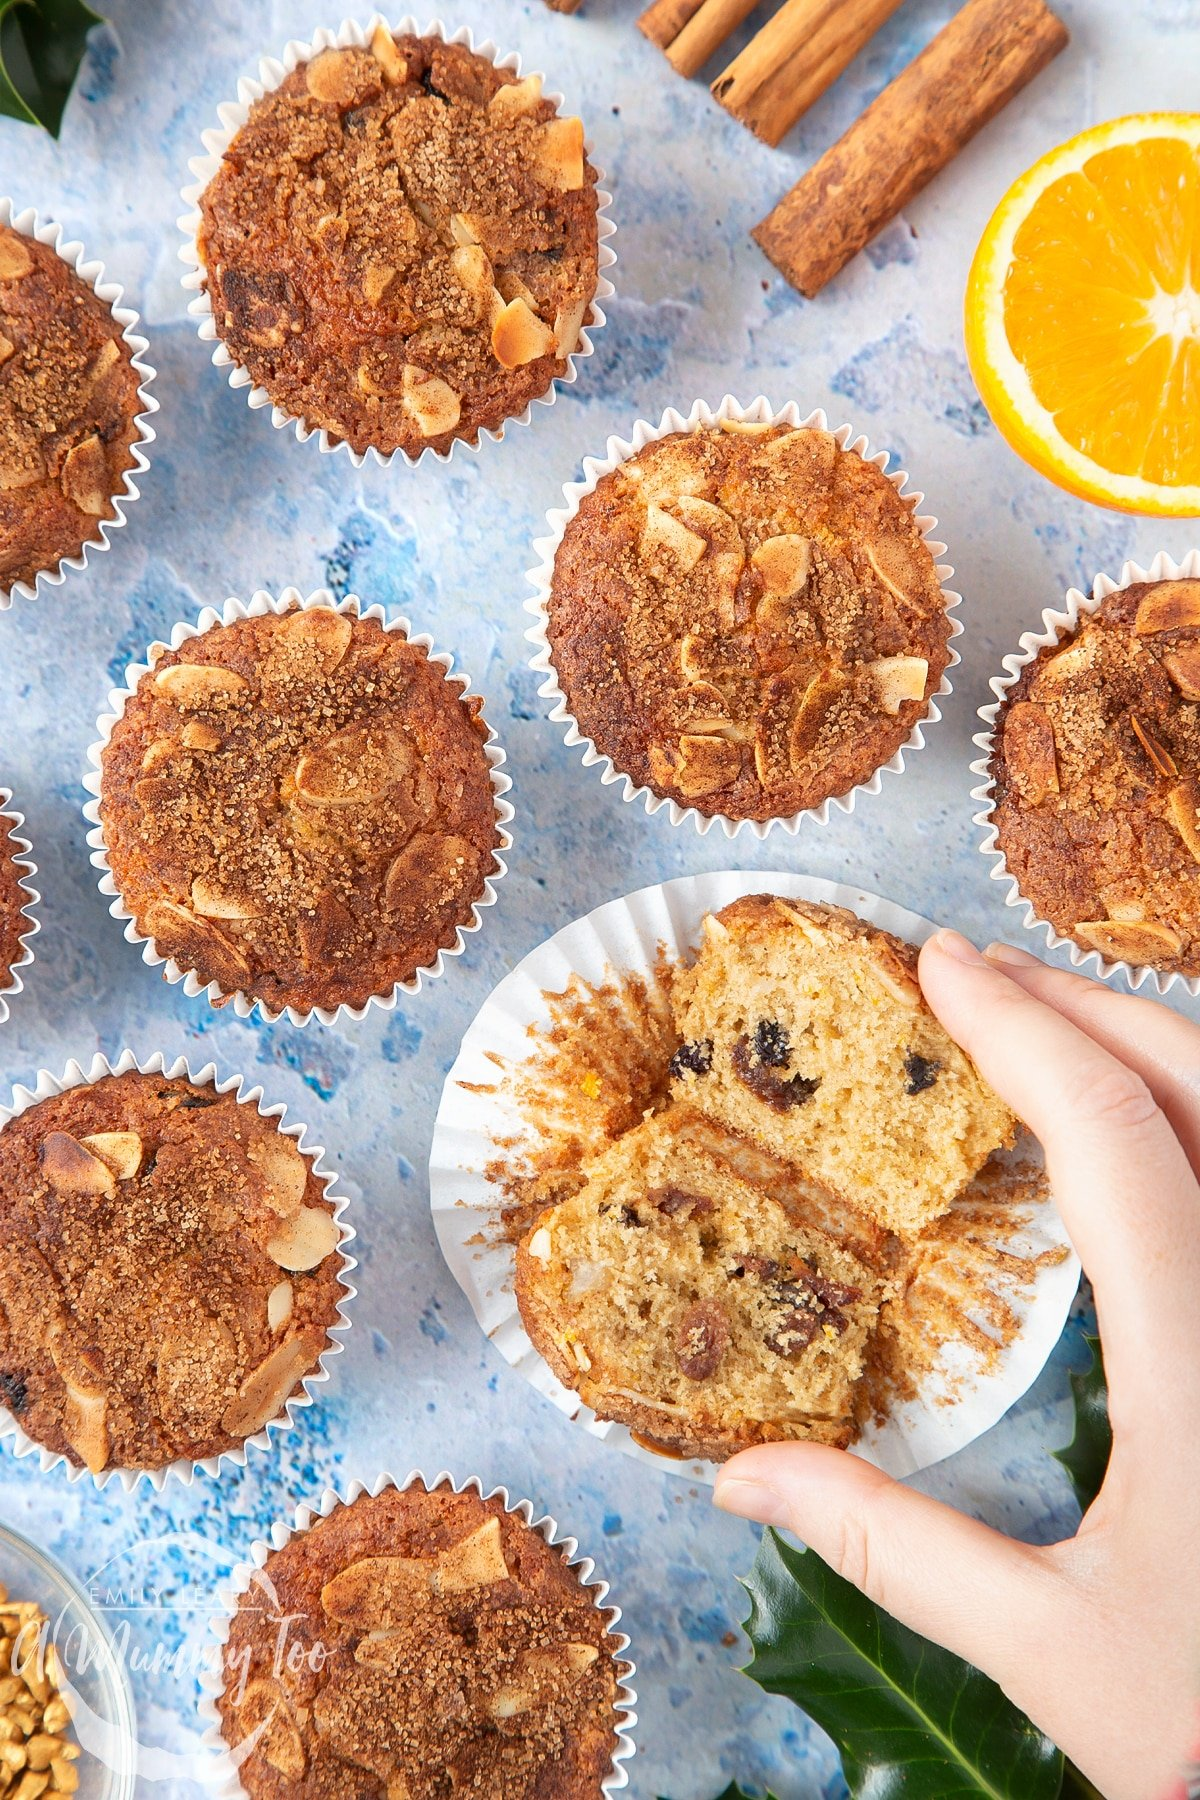 Overhead shot of a hand holding a Orange and cinnamon muffins with a mummy too logo in the lower-left corner